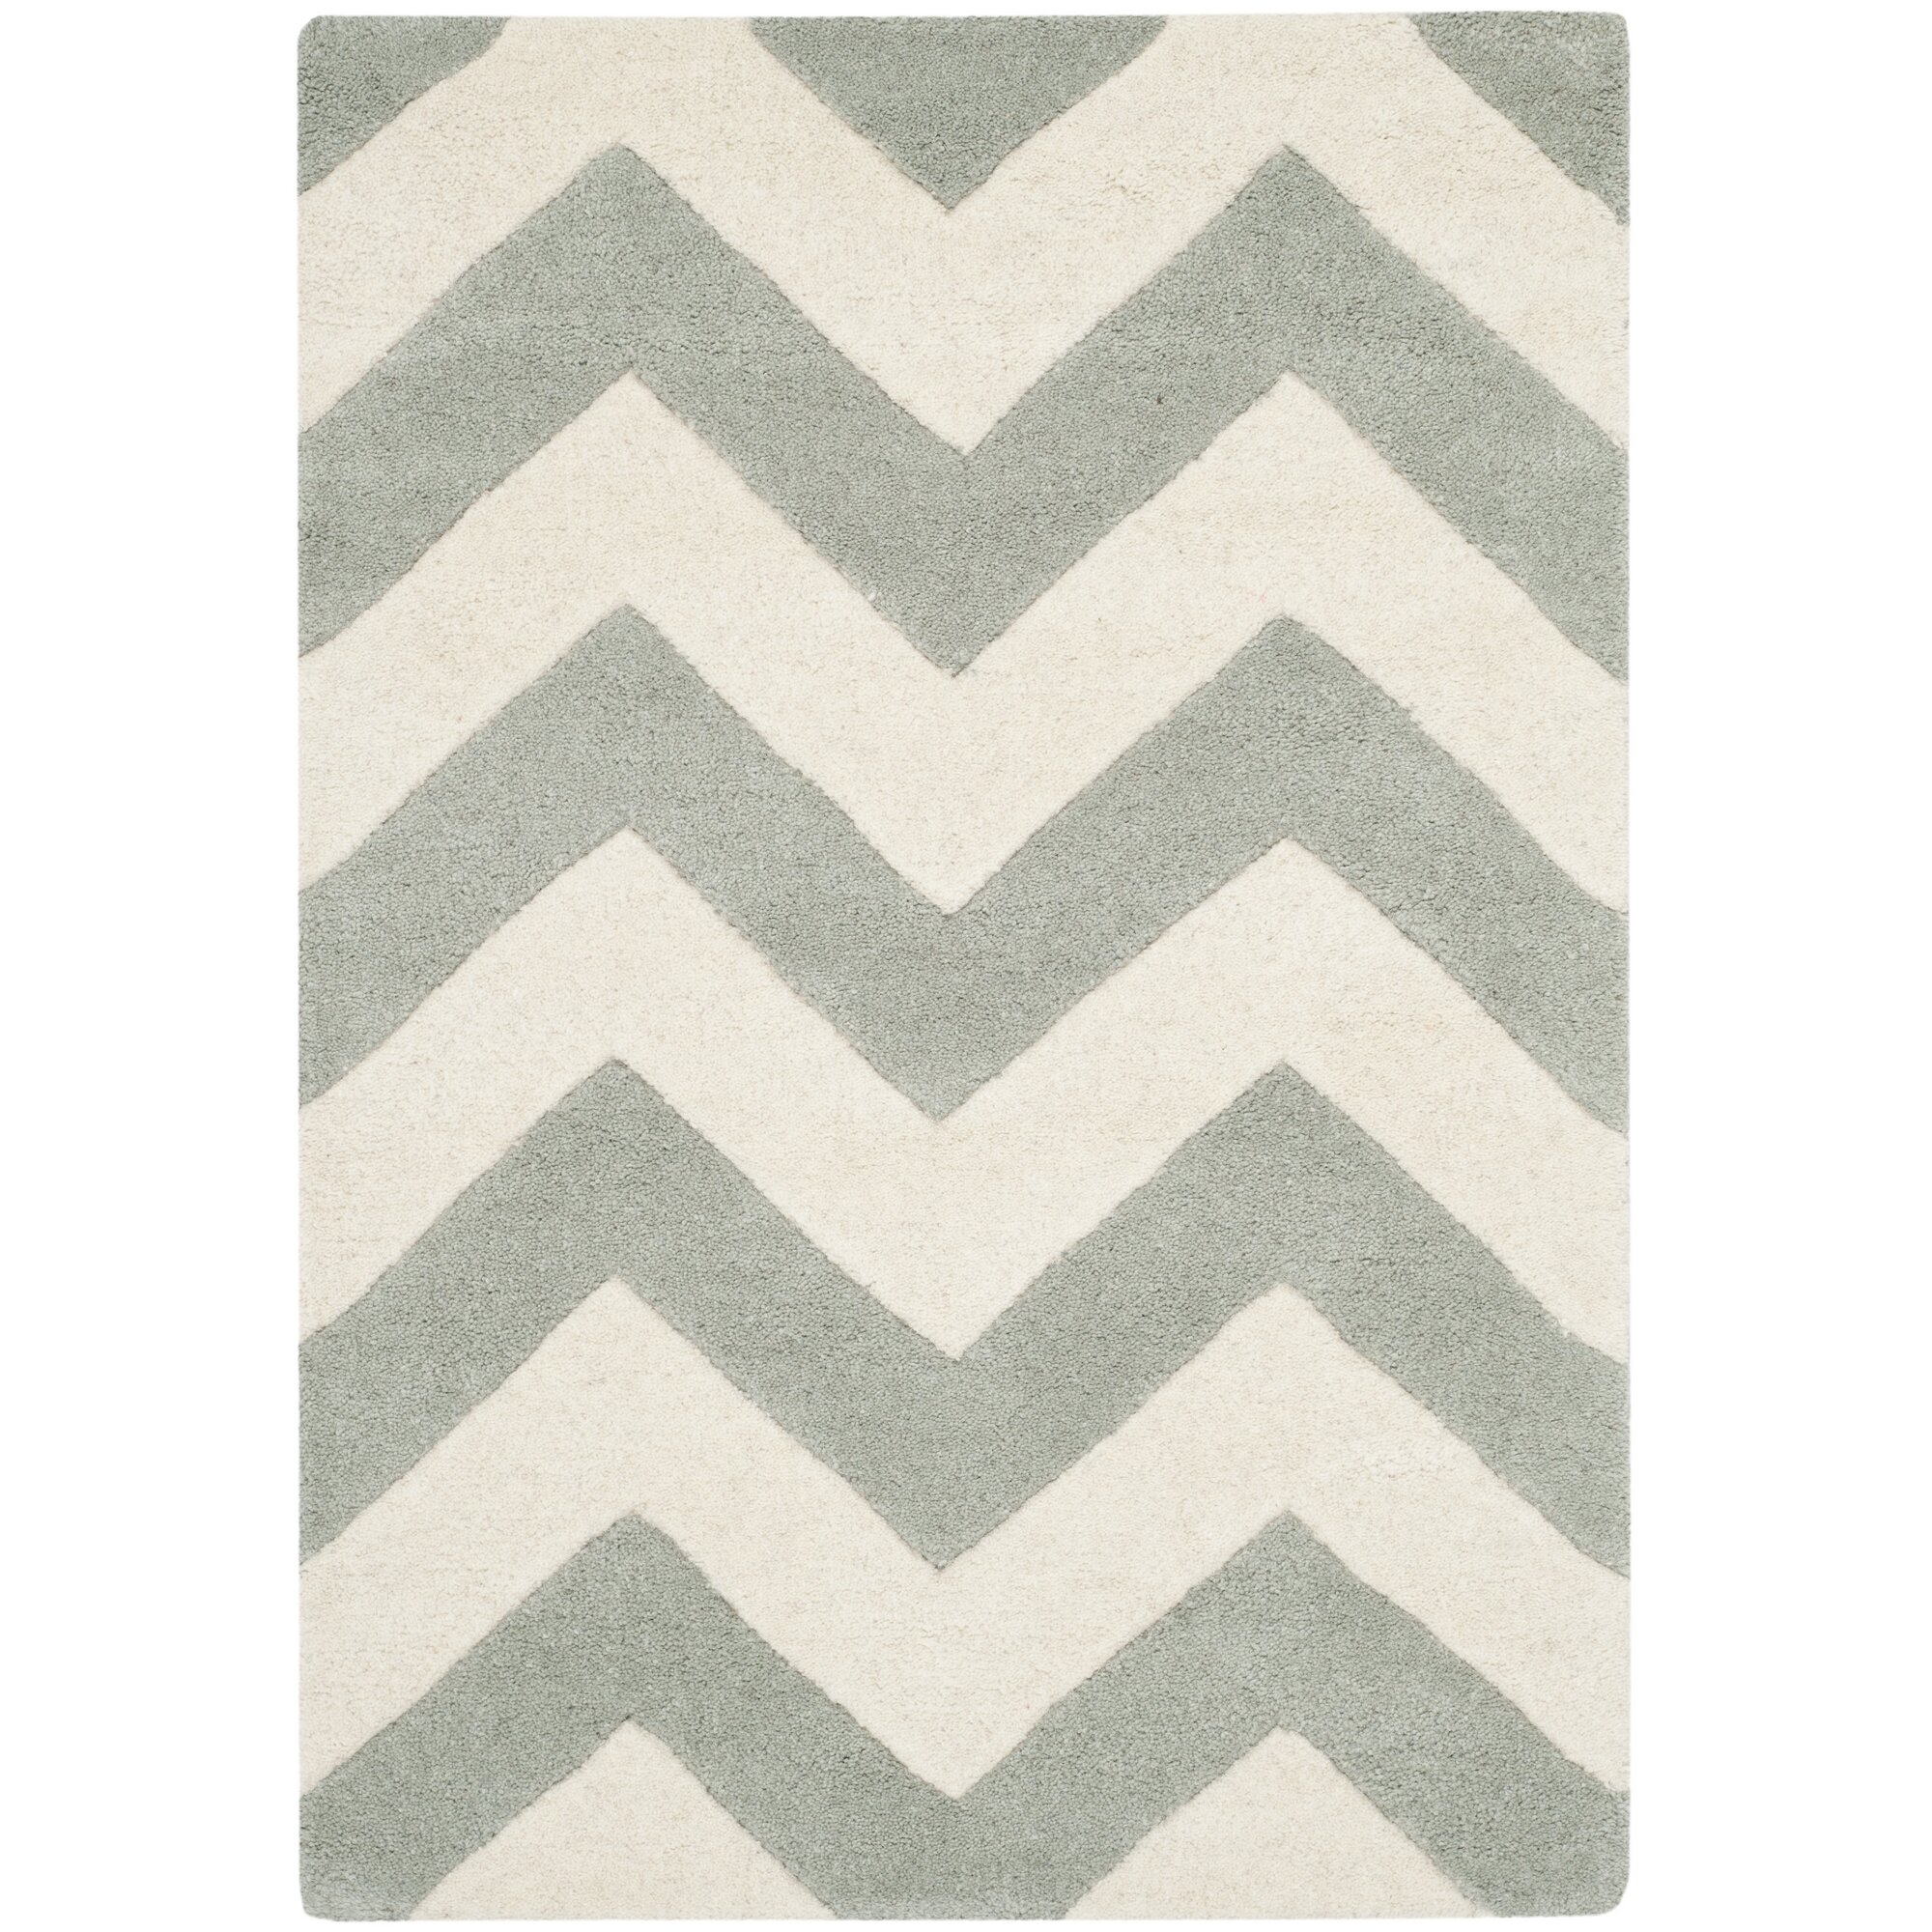 Chevron Kitchen Rug: Safavieh Chatham Chevron Grey/Ivory Area Rug & Reviews